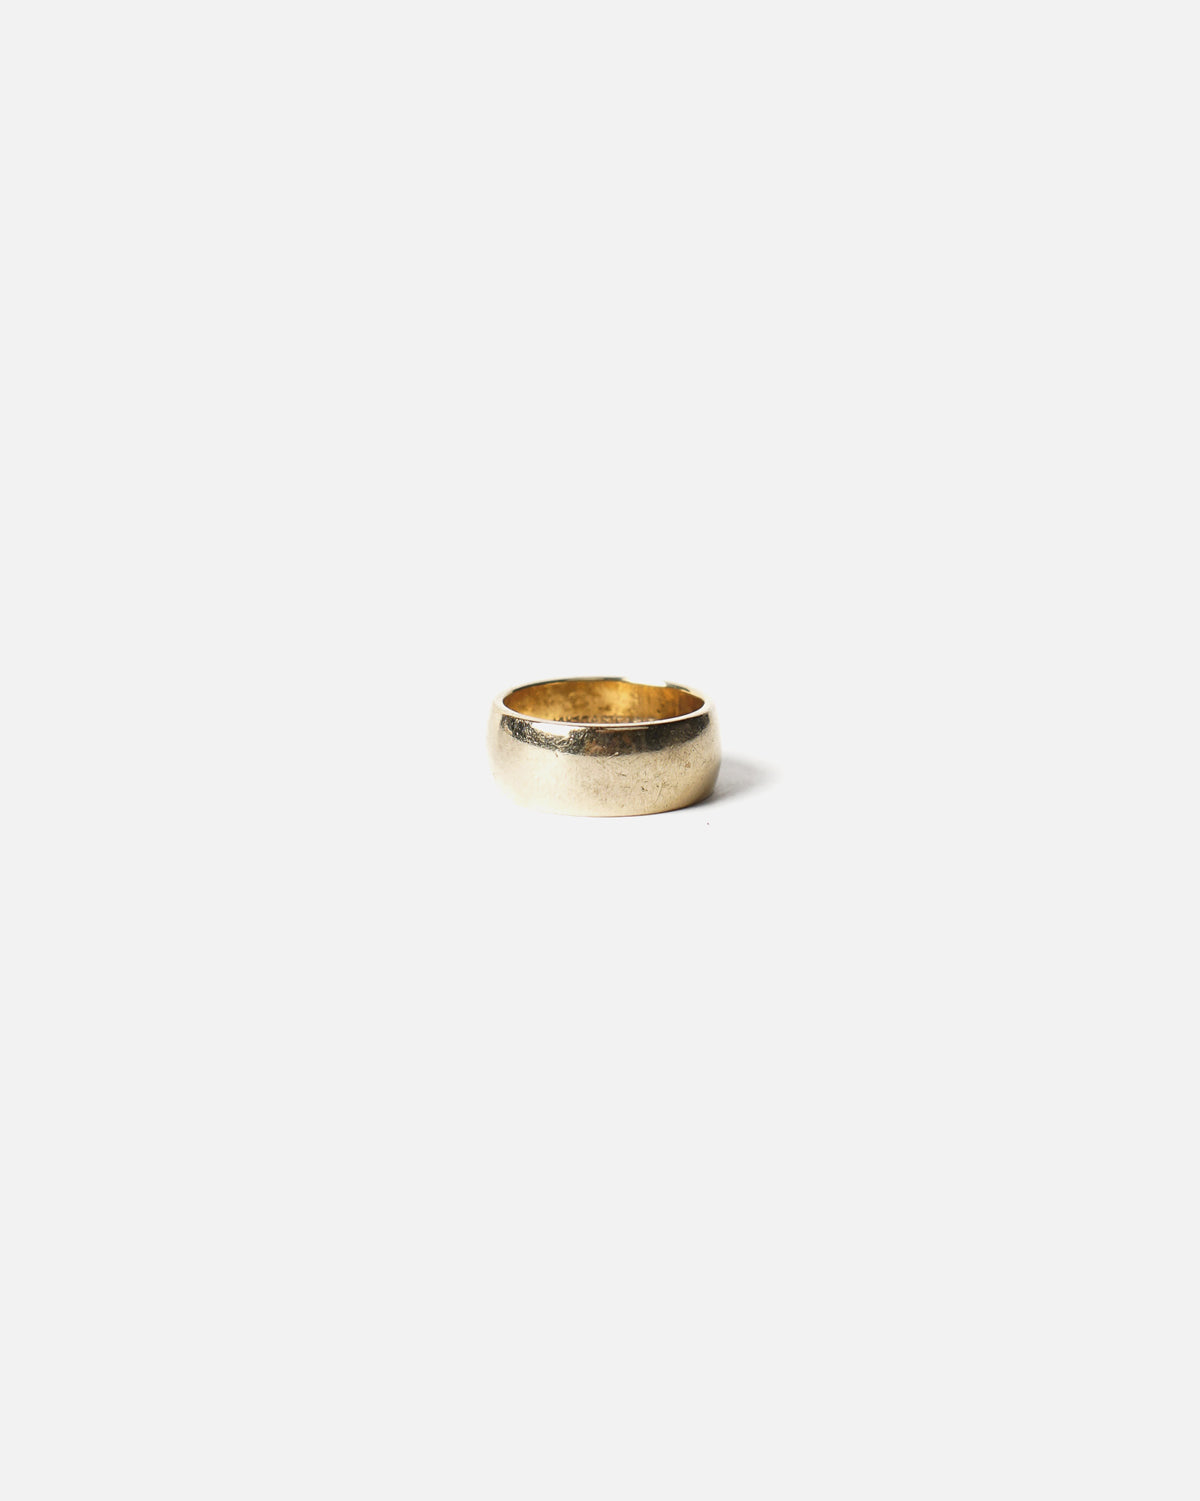 14K Gold 8mm Wide Ring